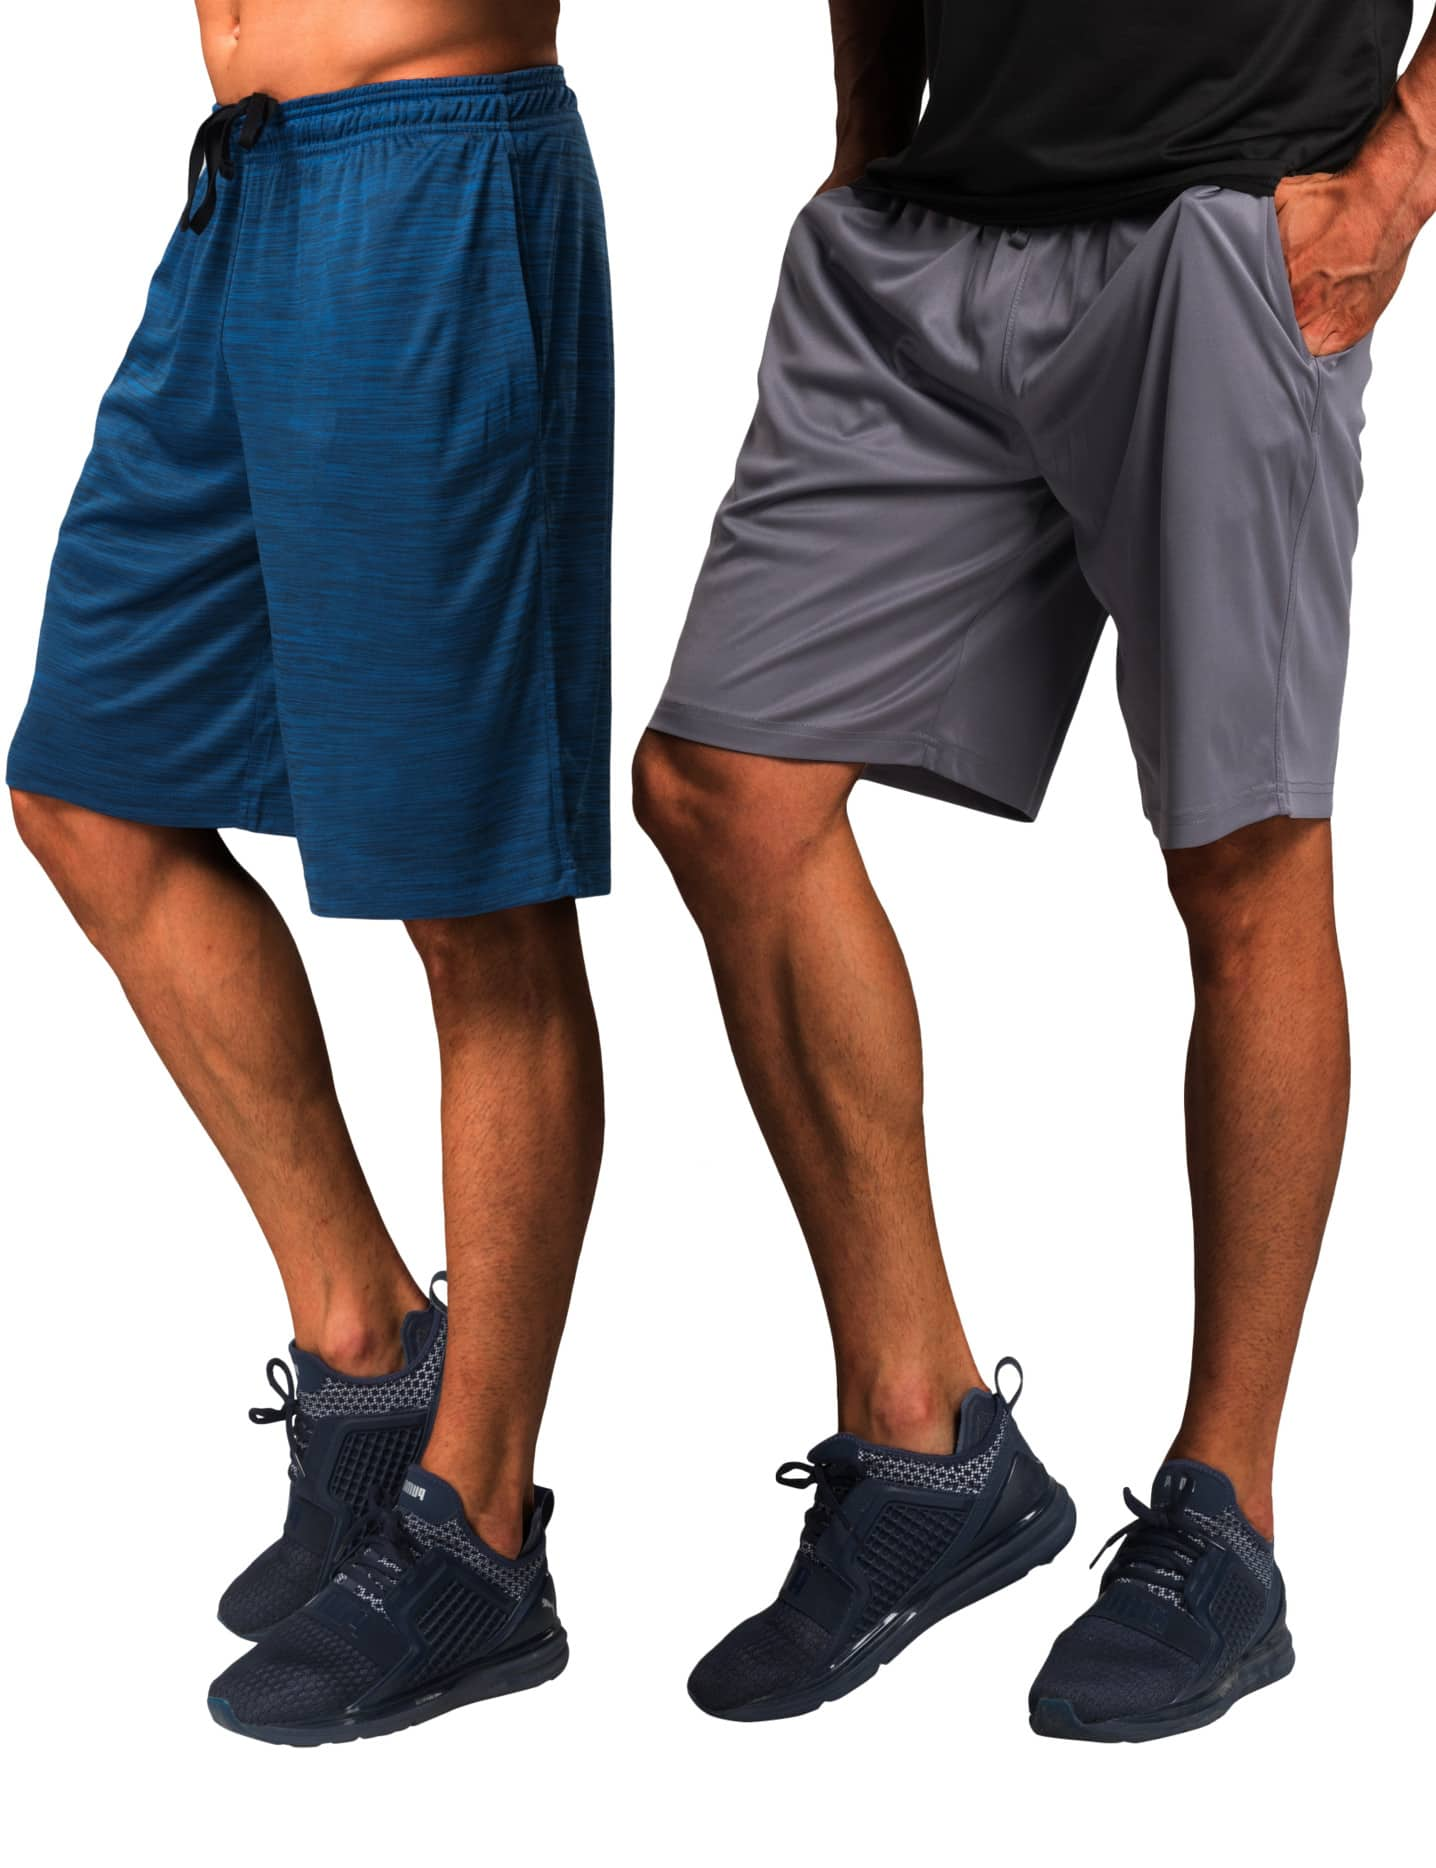 (2PK) CYZ Men's Performance Gym Shorts $7.99 + FSSS